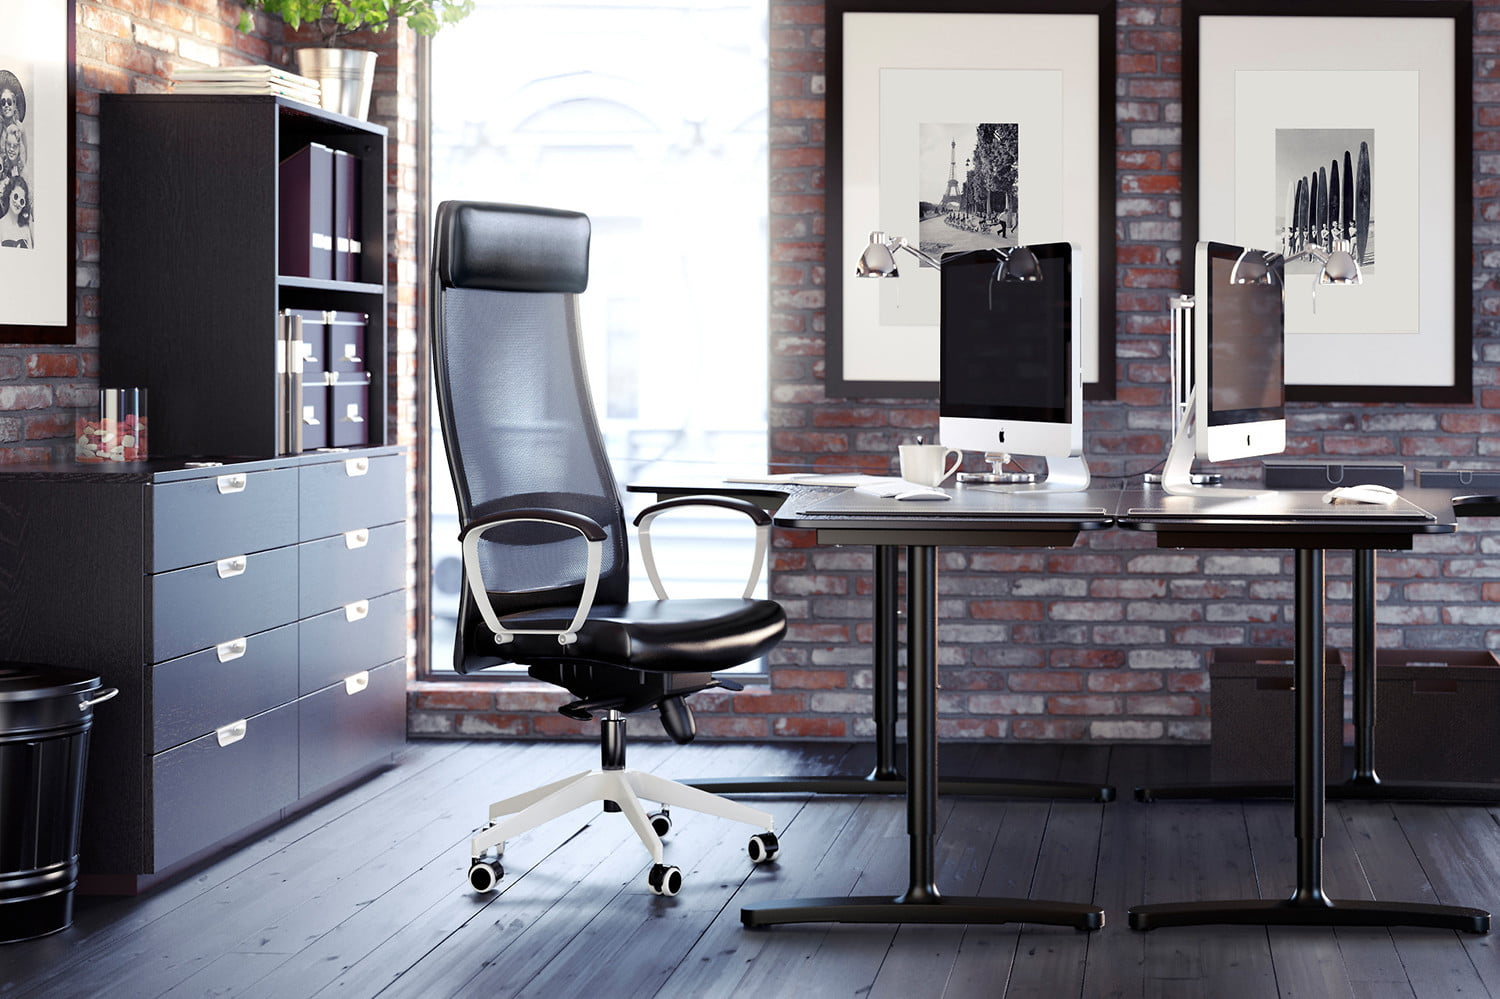 Furniture Office Workspace Cool Macbook Air Laptop The Best Office Chairs For 2019 Bustle The Best Office Chairs For 2019 Digital Trends